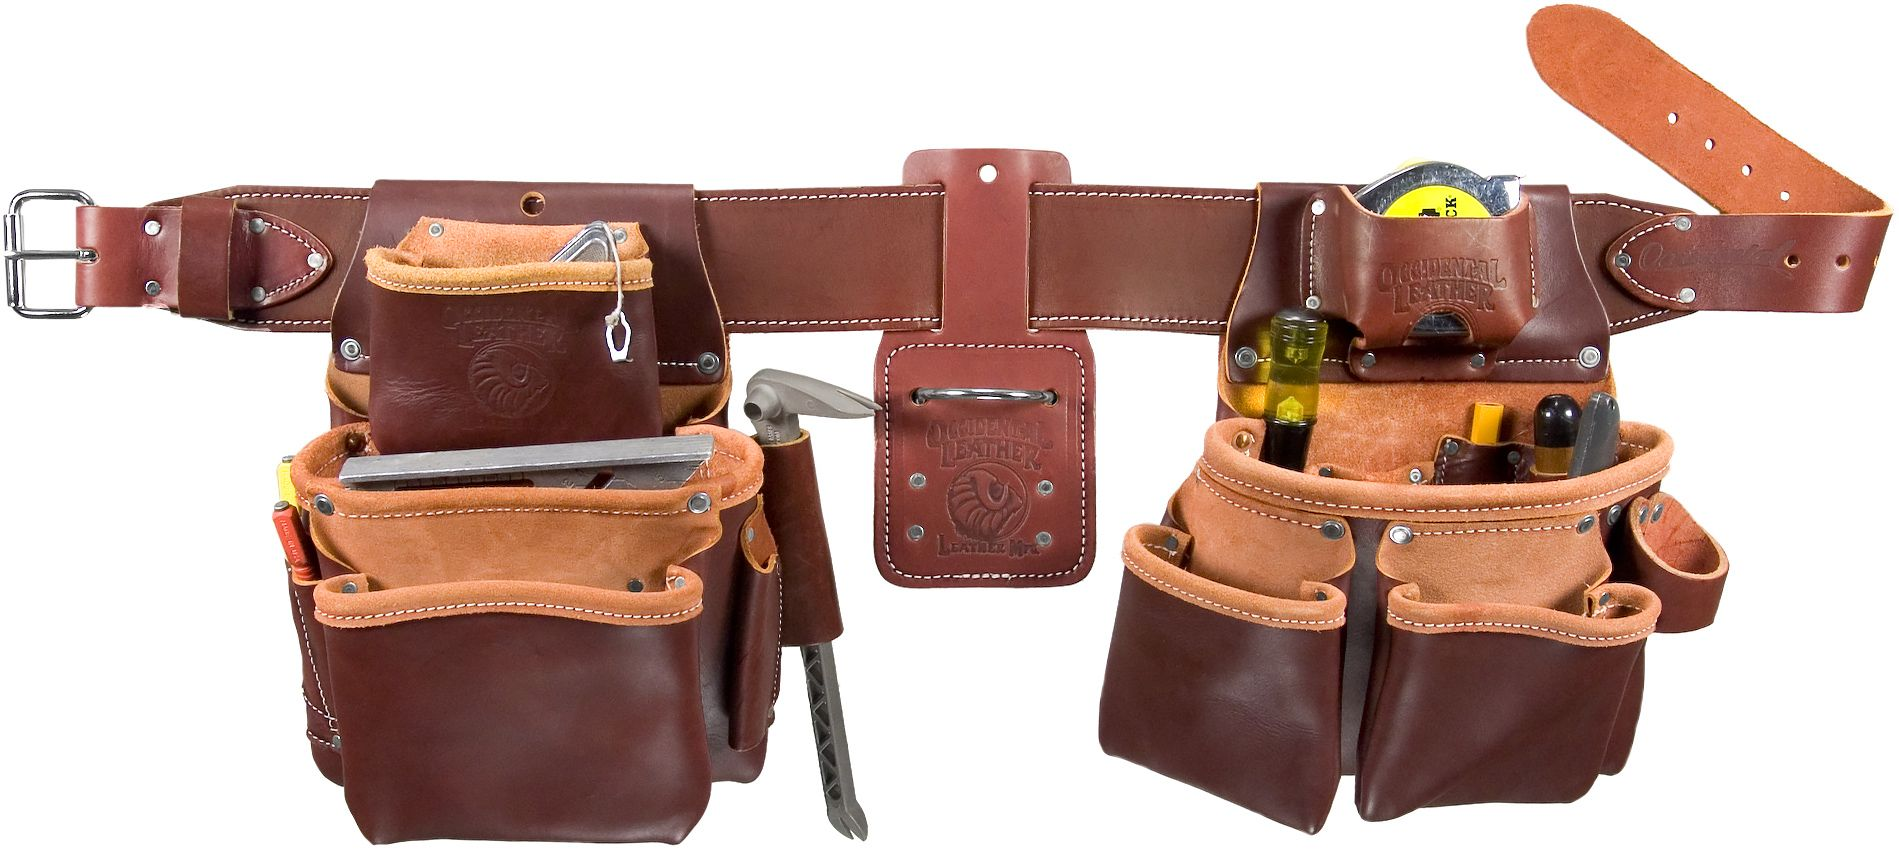 Occidental Leather Pro Framer Tool Belt Set With Double